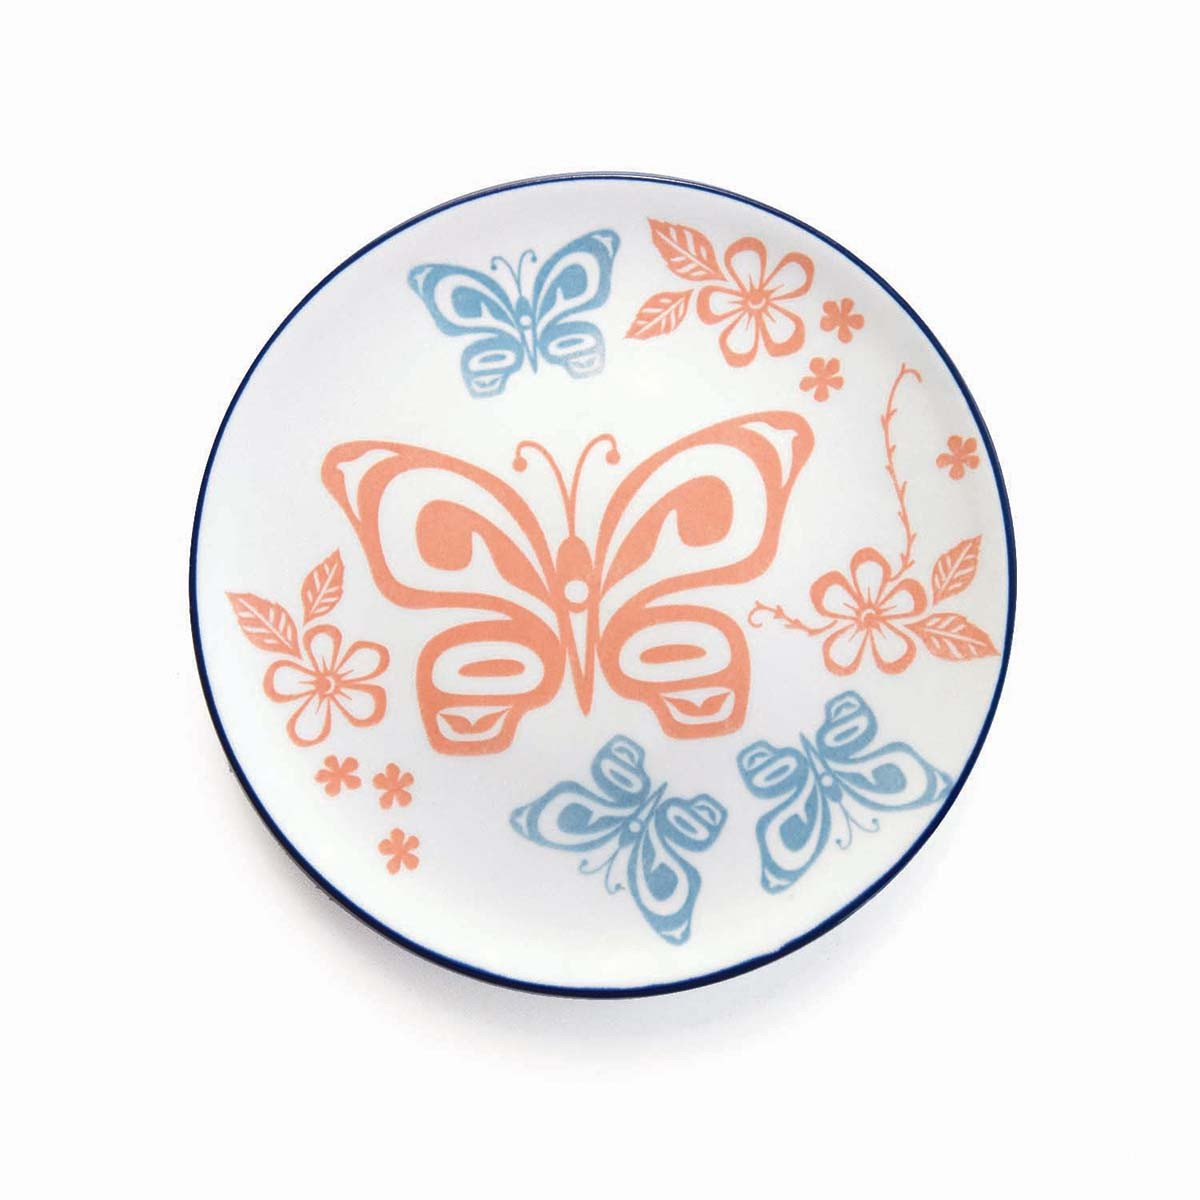 Butterfly and Wild Rose - Porcelain Art Plate